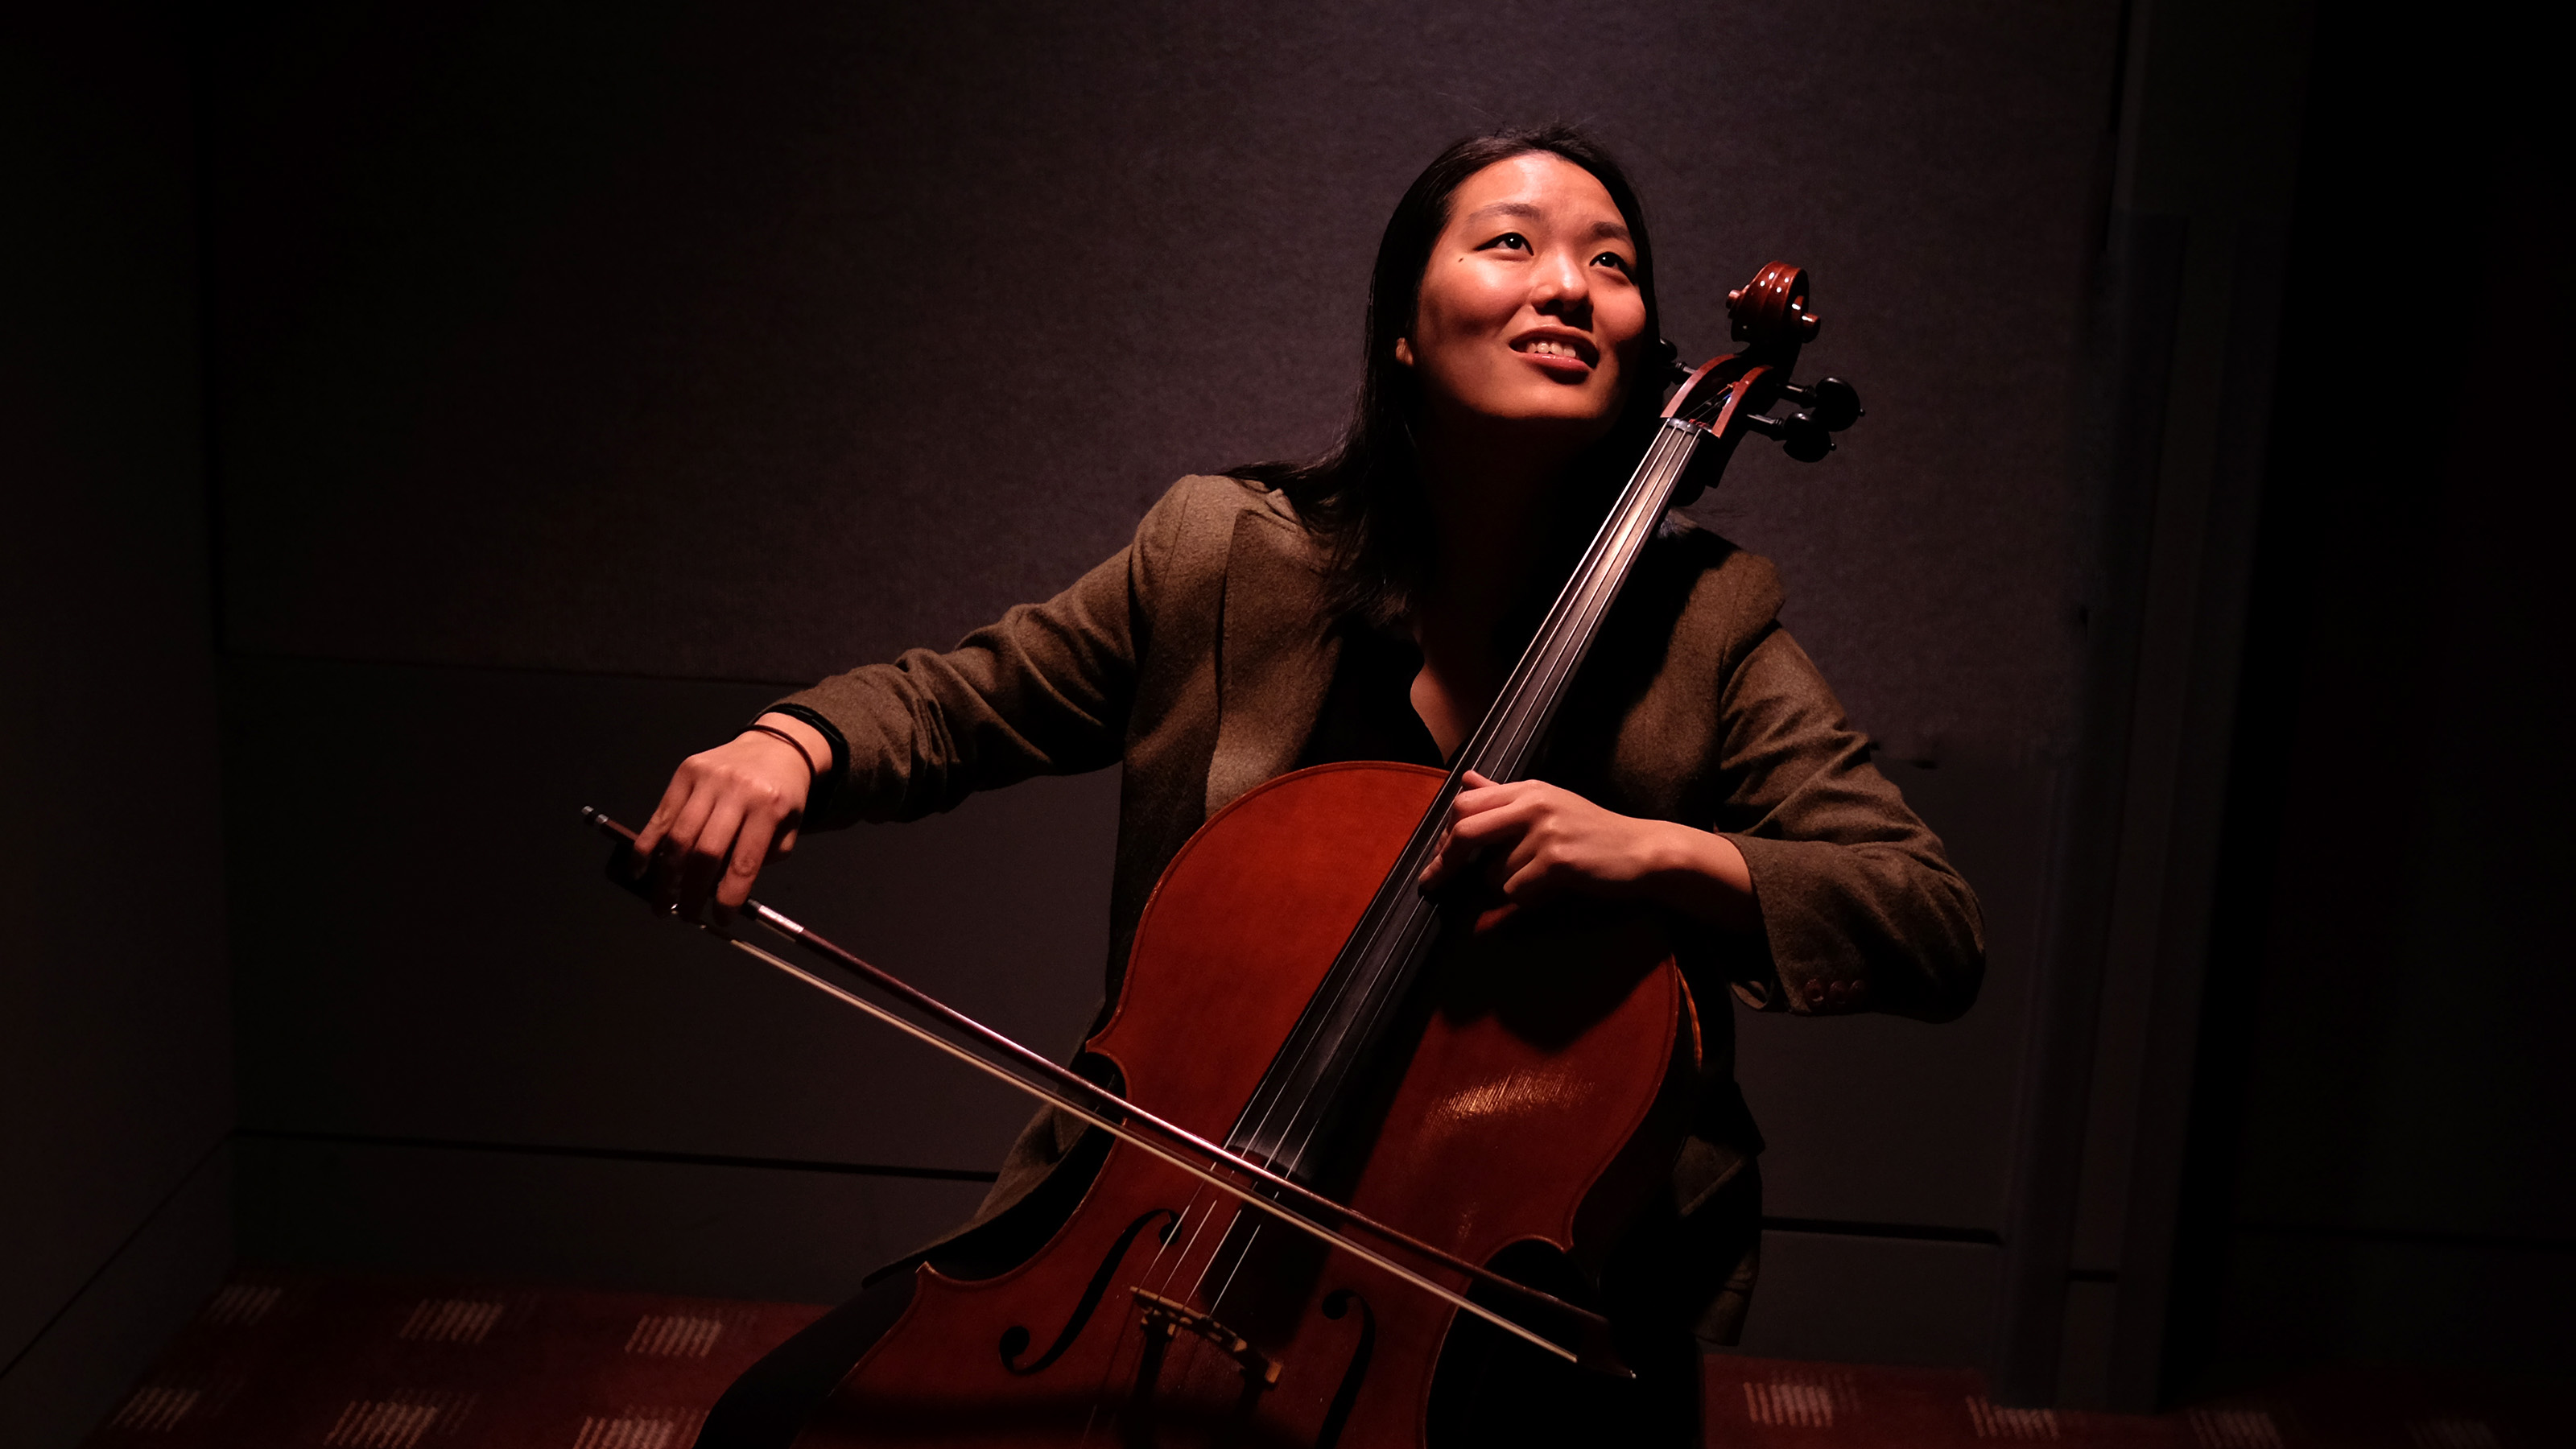 Joanne Lee finds success with cello